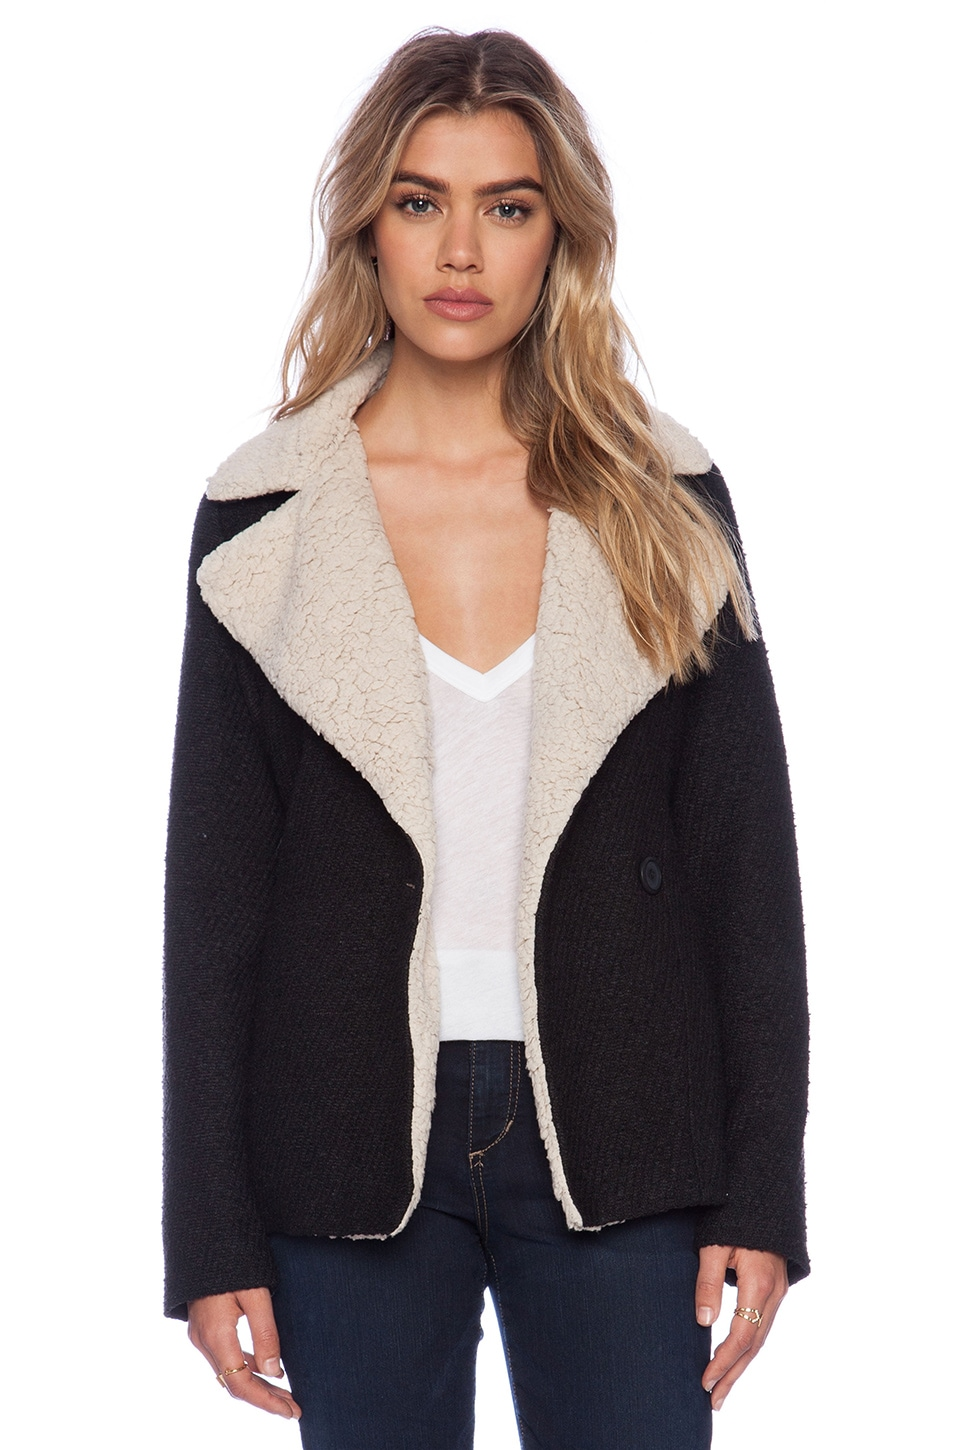 BB Dakota Smith Jacket with Faux Fur Lining in Black